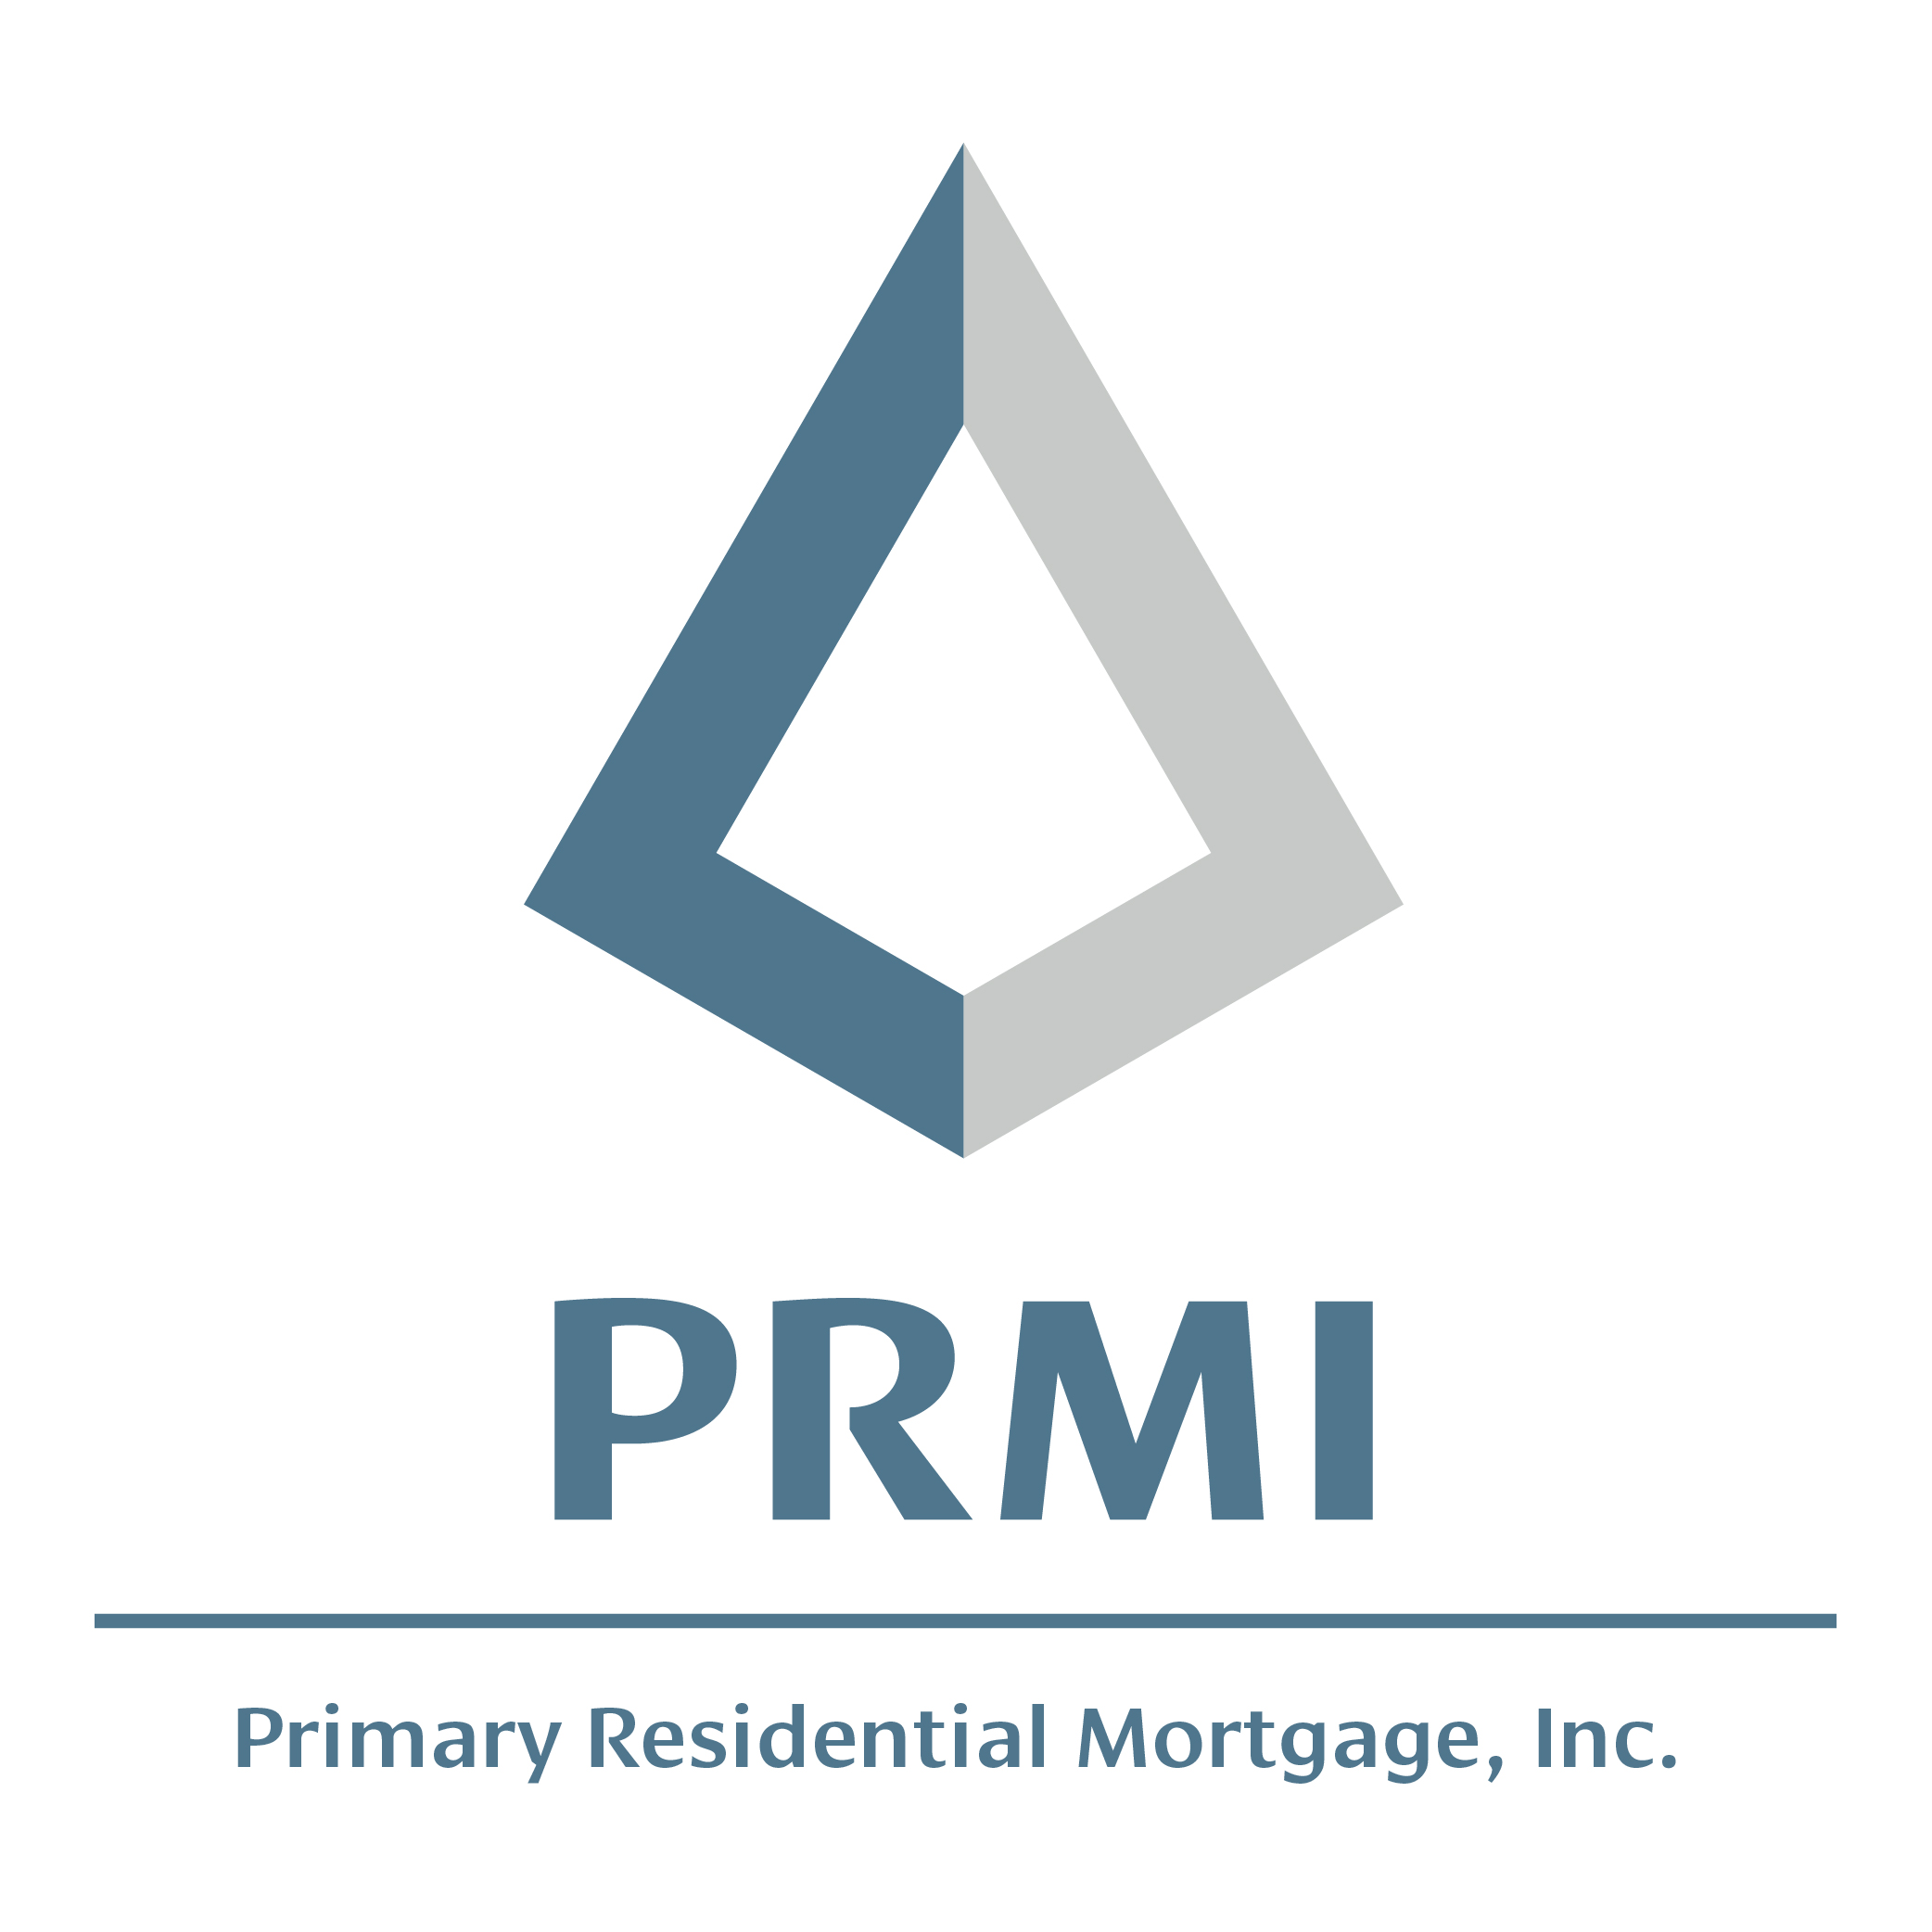 Primary Residential Mortgage, Inc. - Brentwood, TN 37027 - (615)905-0074   ShowMeLocal.com